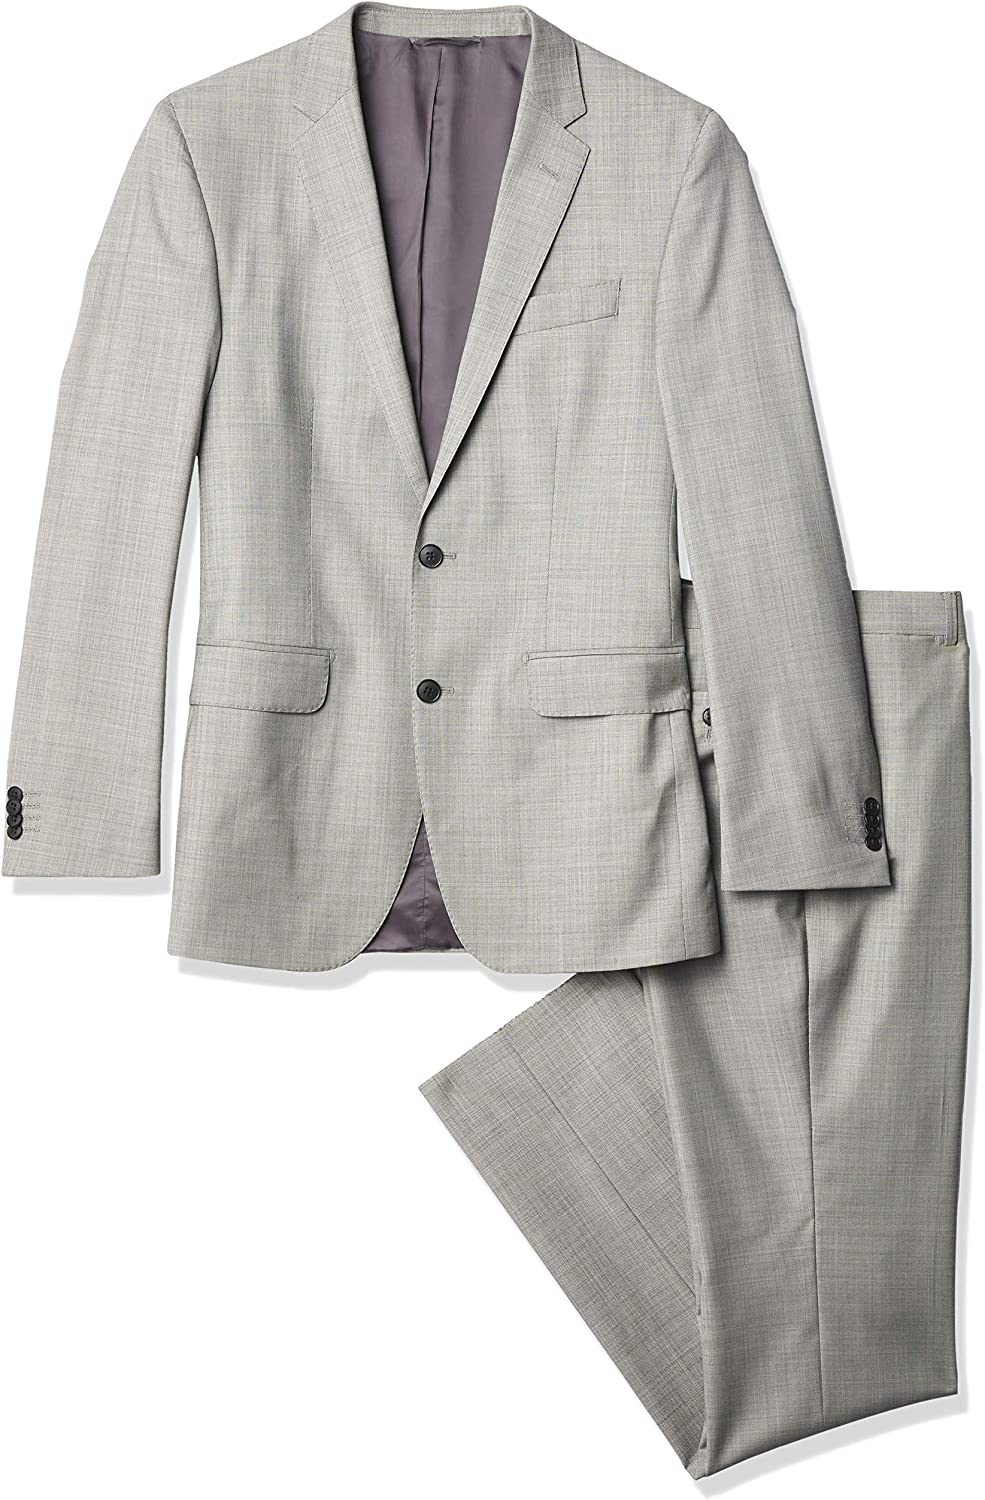 Ike Behar Men's Two-Button Side-Vent Wool Suit with Flat-Front Pant